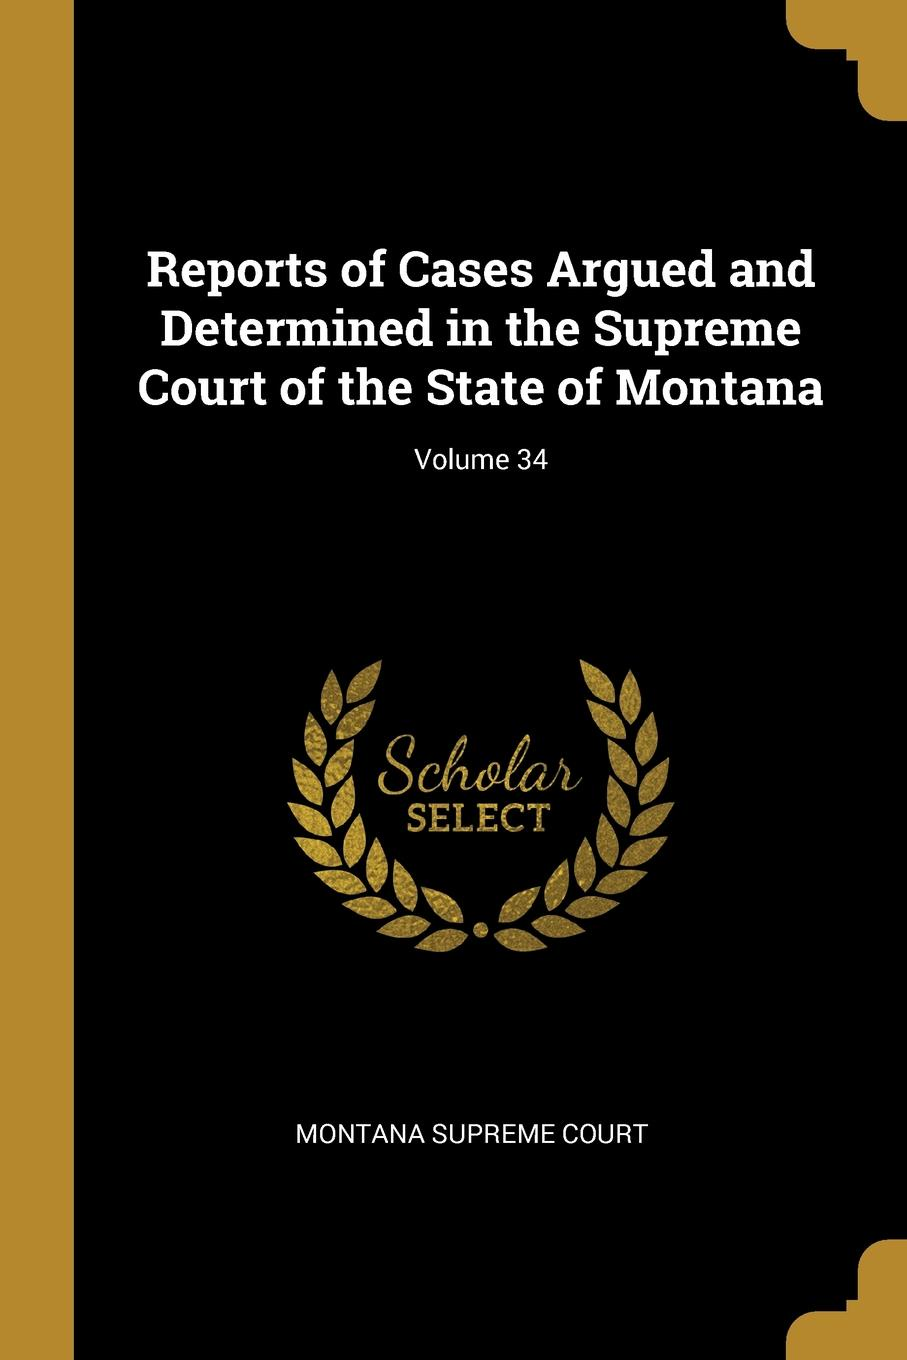 Montana Supreme Court Reports of Cases Argued and Determined in the Supreme Court of the State of Montana; Volume 34